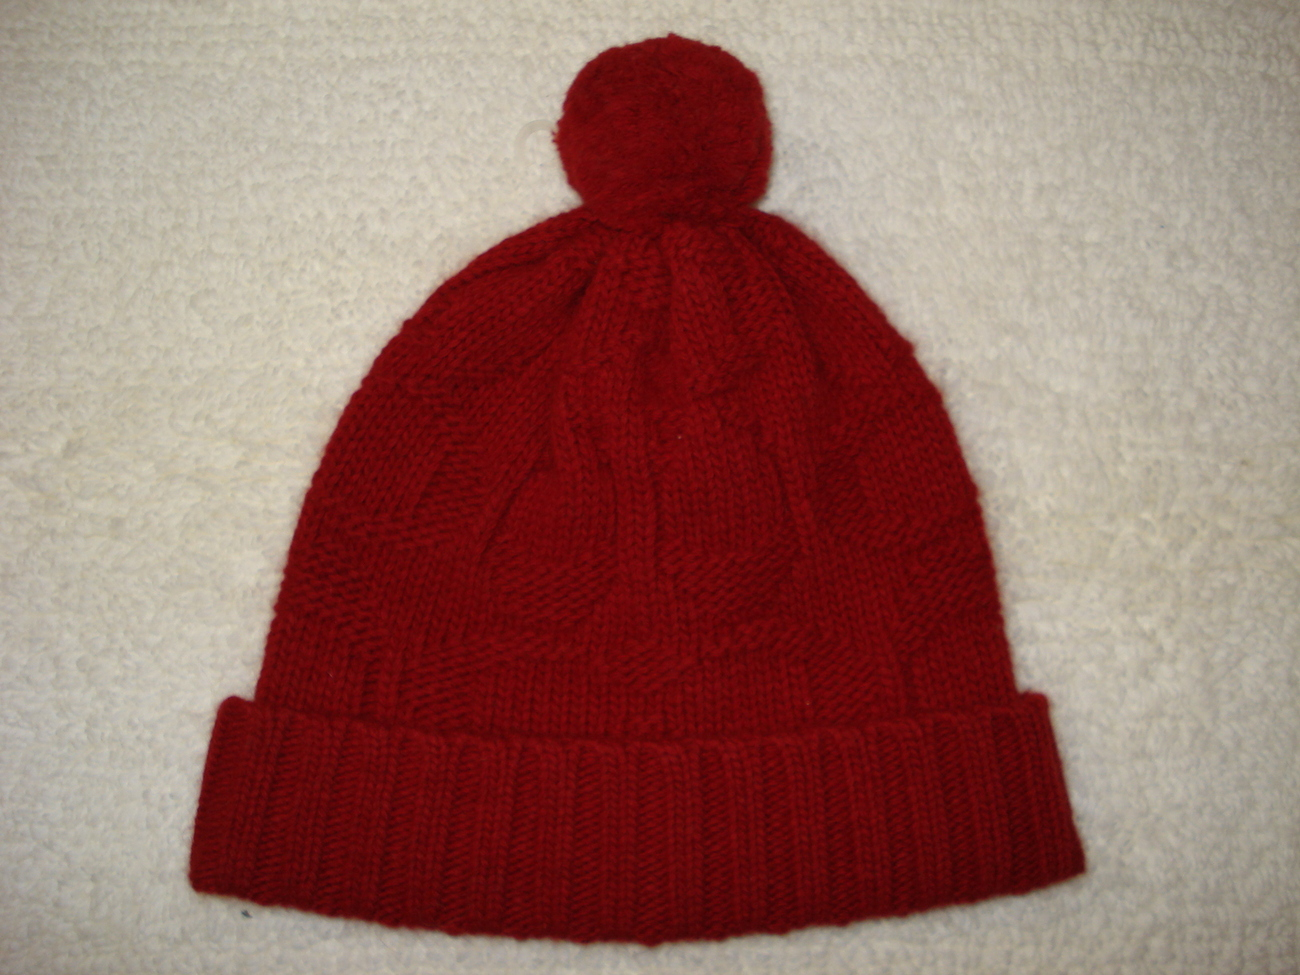 NWT Coach Red Sculpted C Signature Hat Wool/Angora Blend OSFA